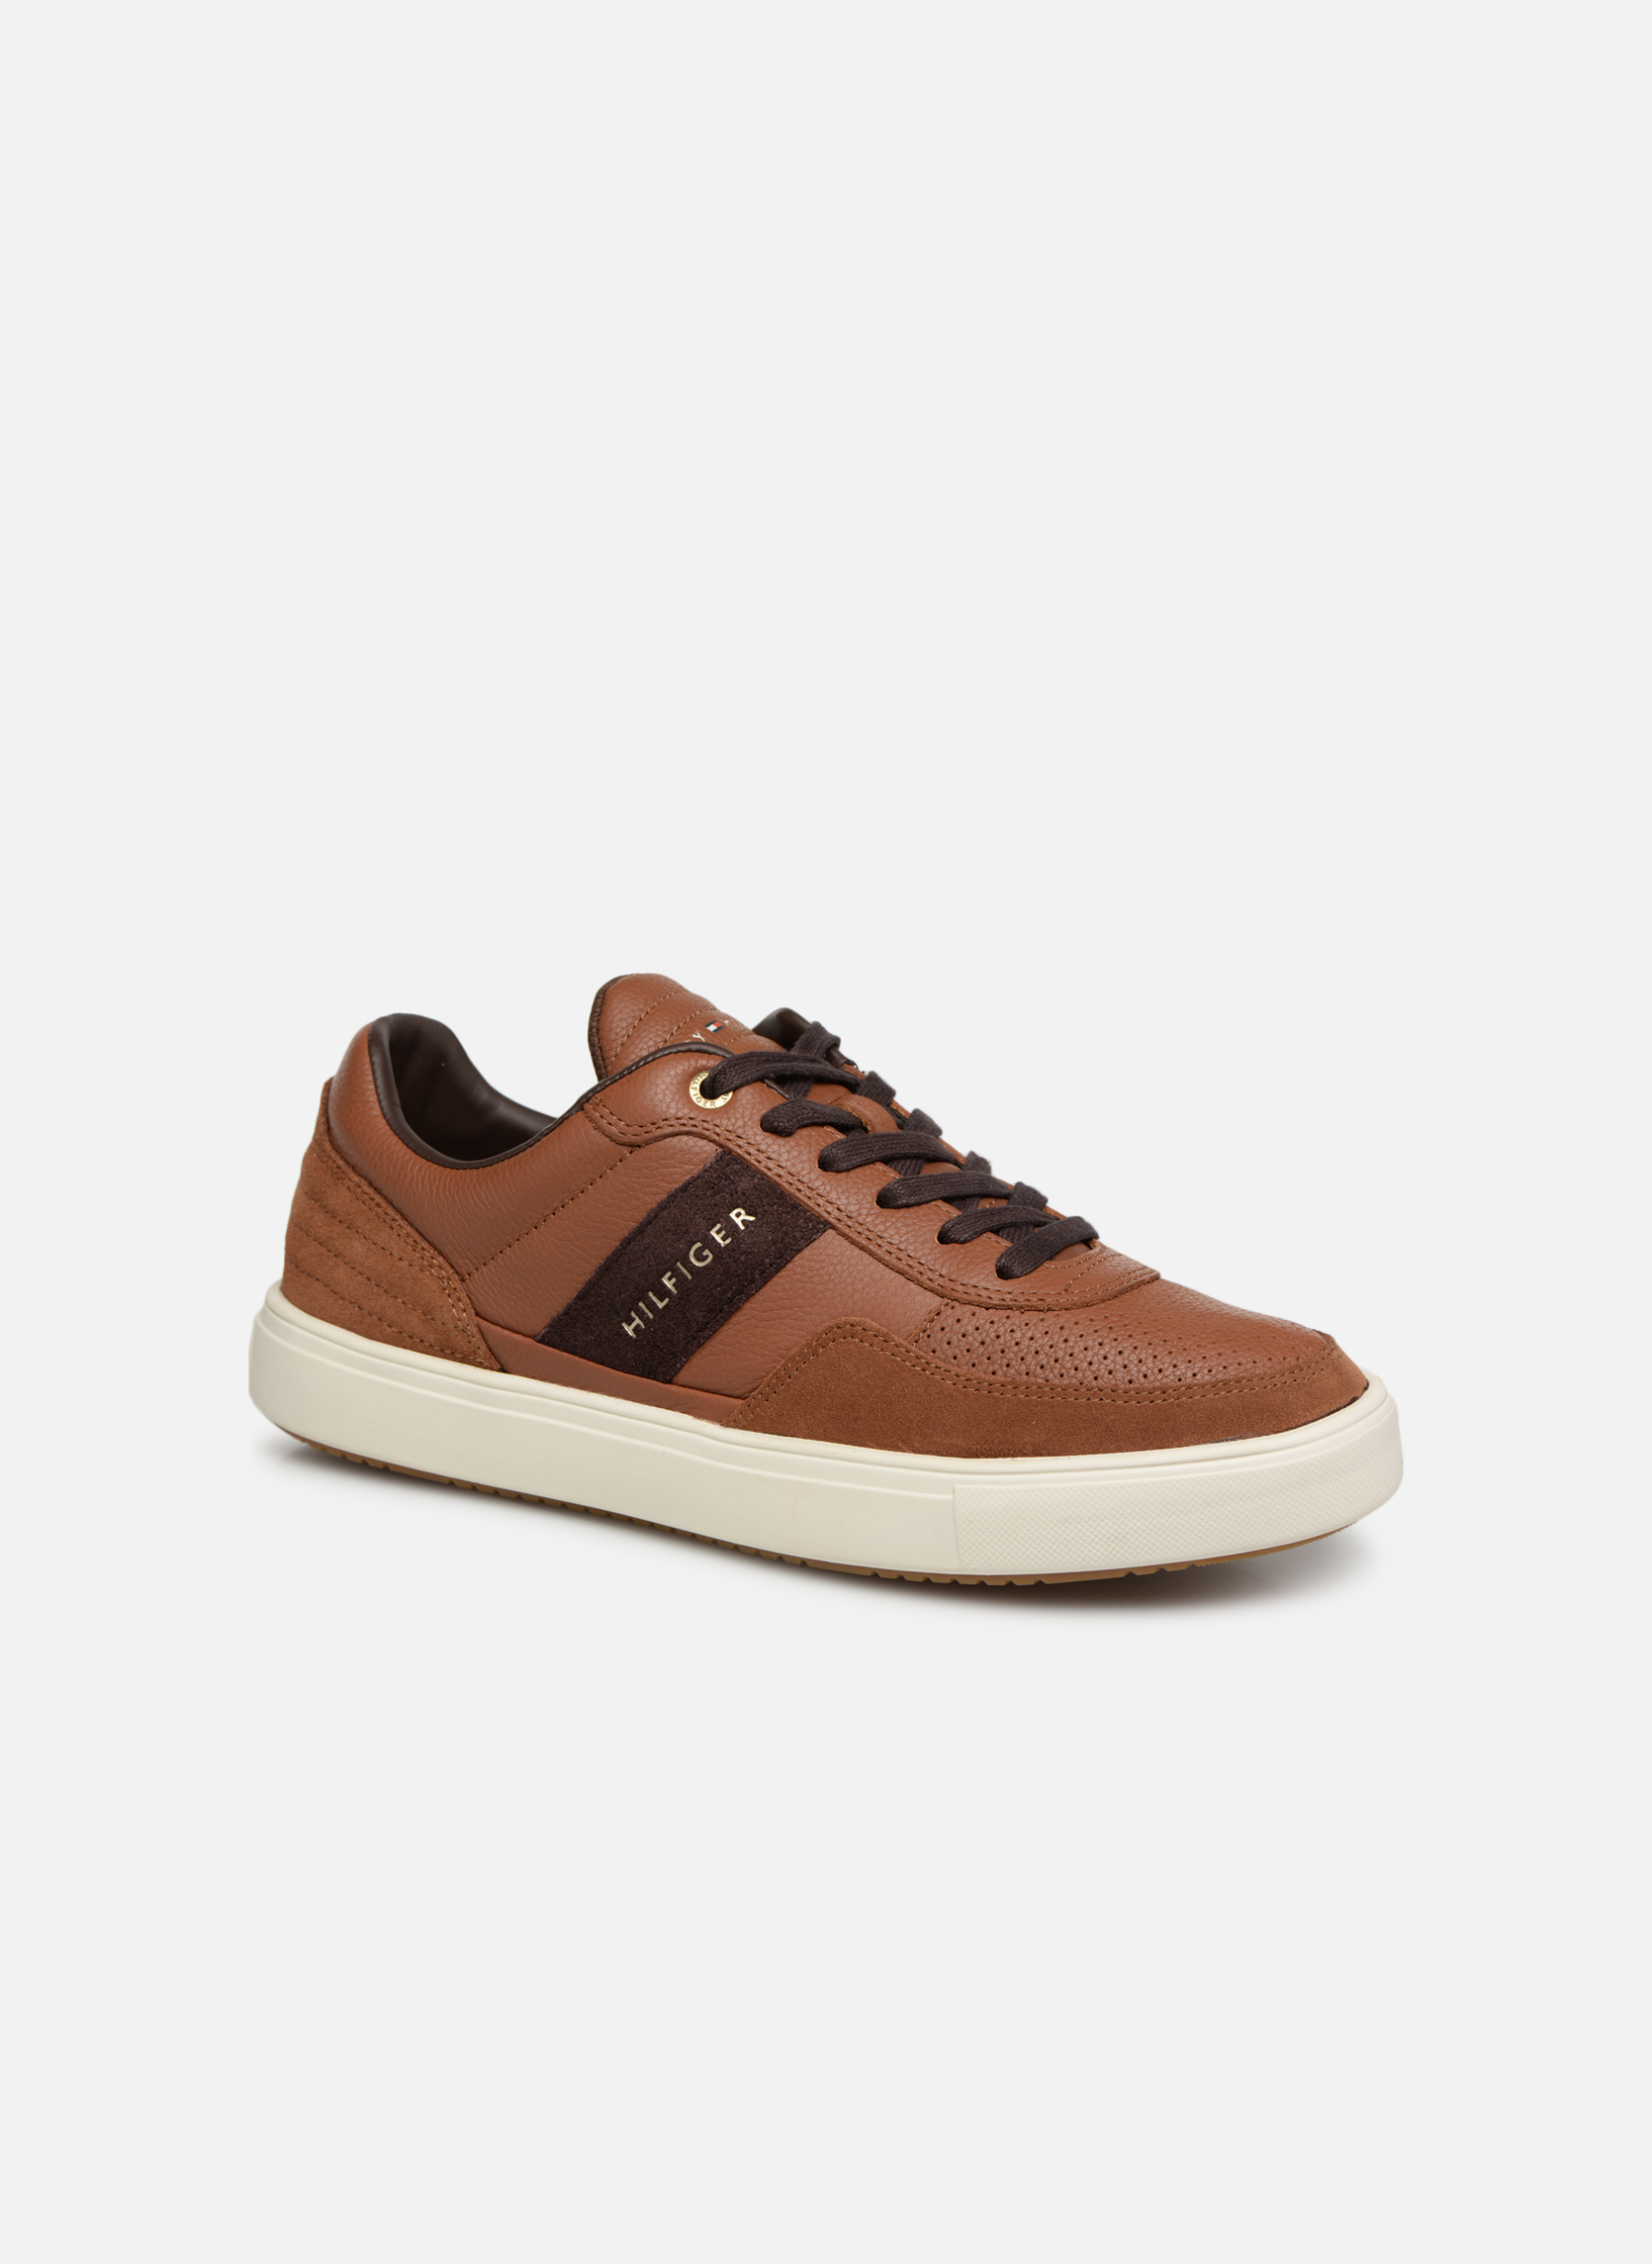 Sneakers Tommy Hilfiger Bruin